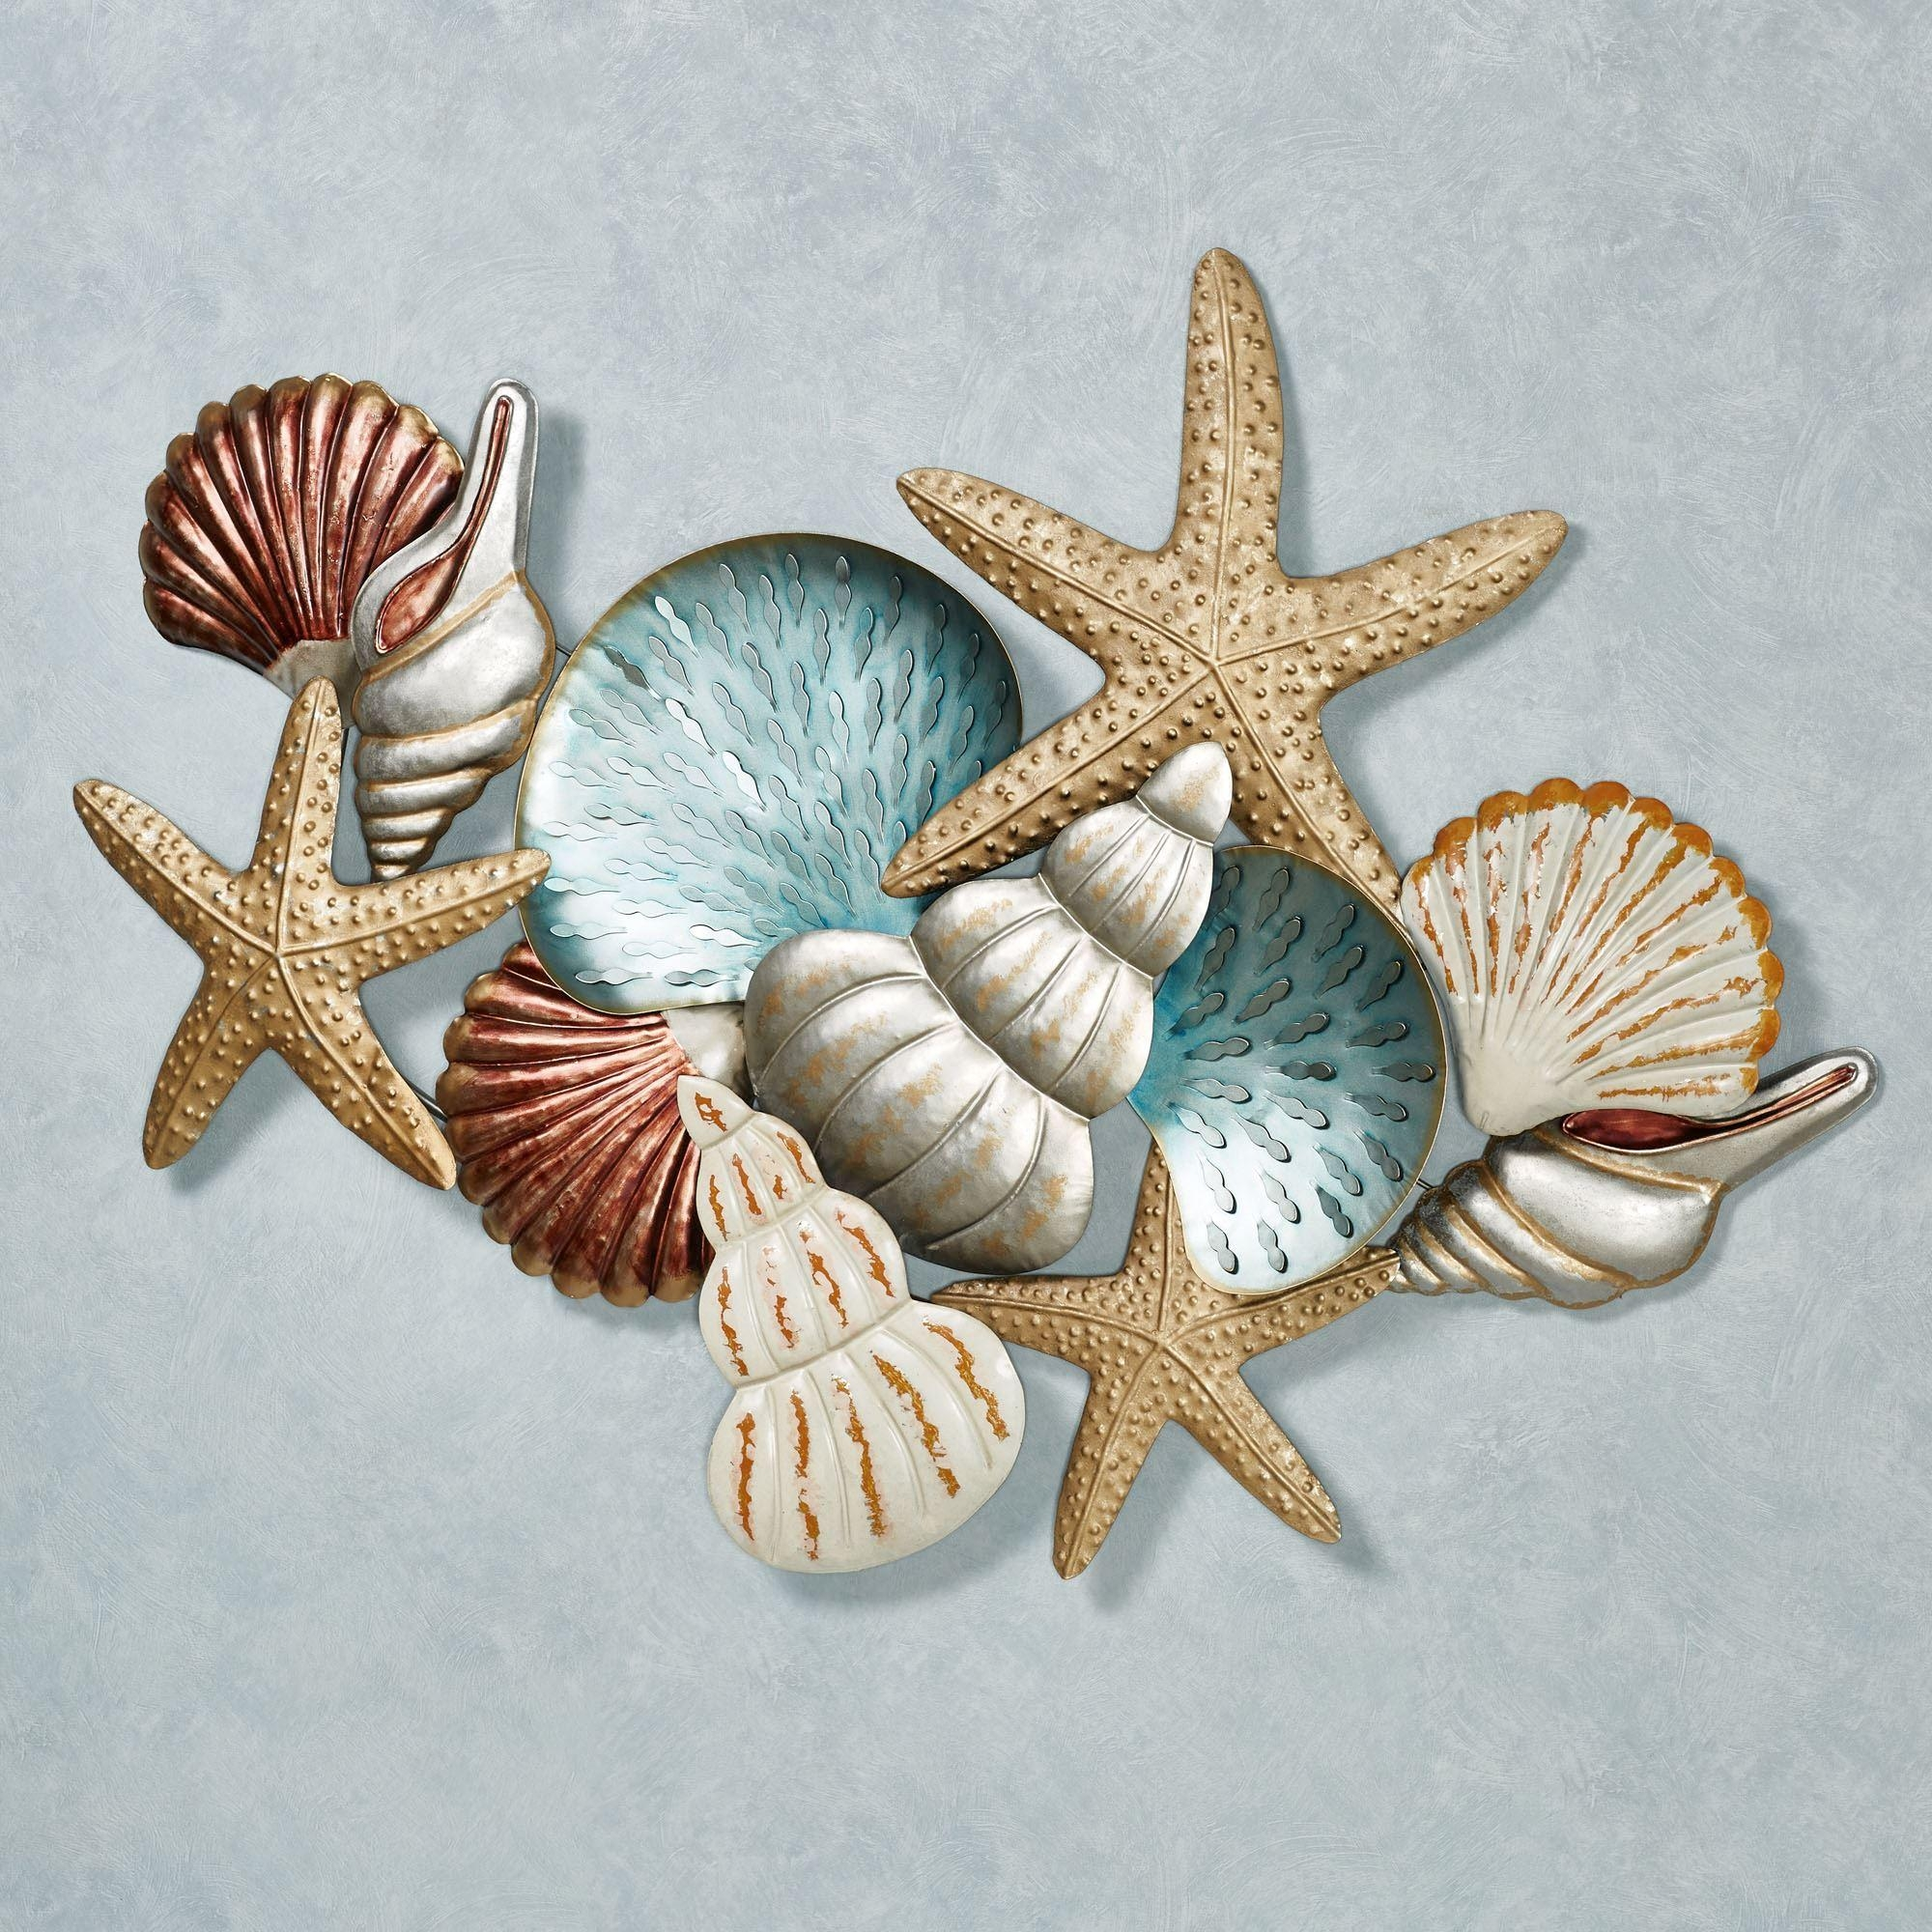 Coastal Metal Wall Sculptures | Touch Of Class Pertaining To Seagull Metal Wall Art (Image 3 of 20)